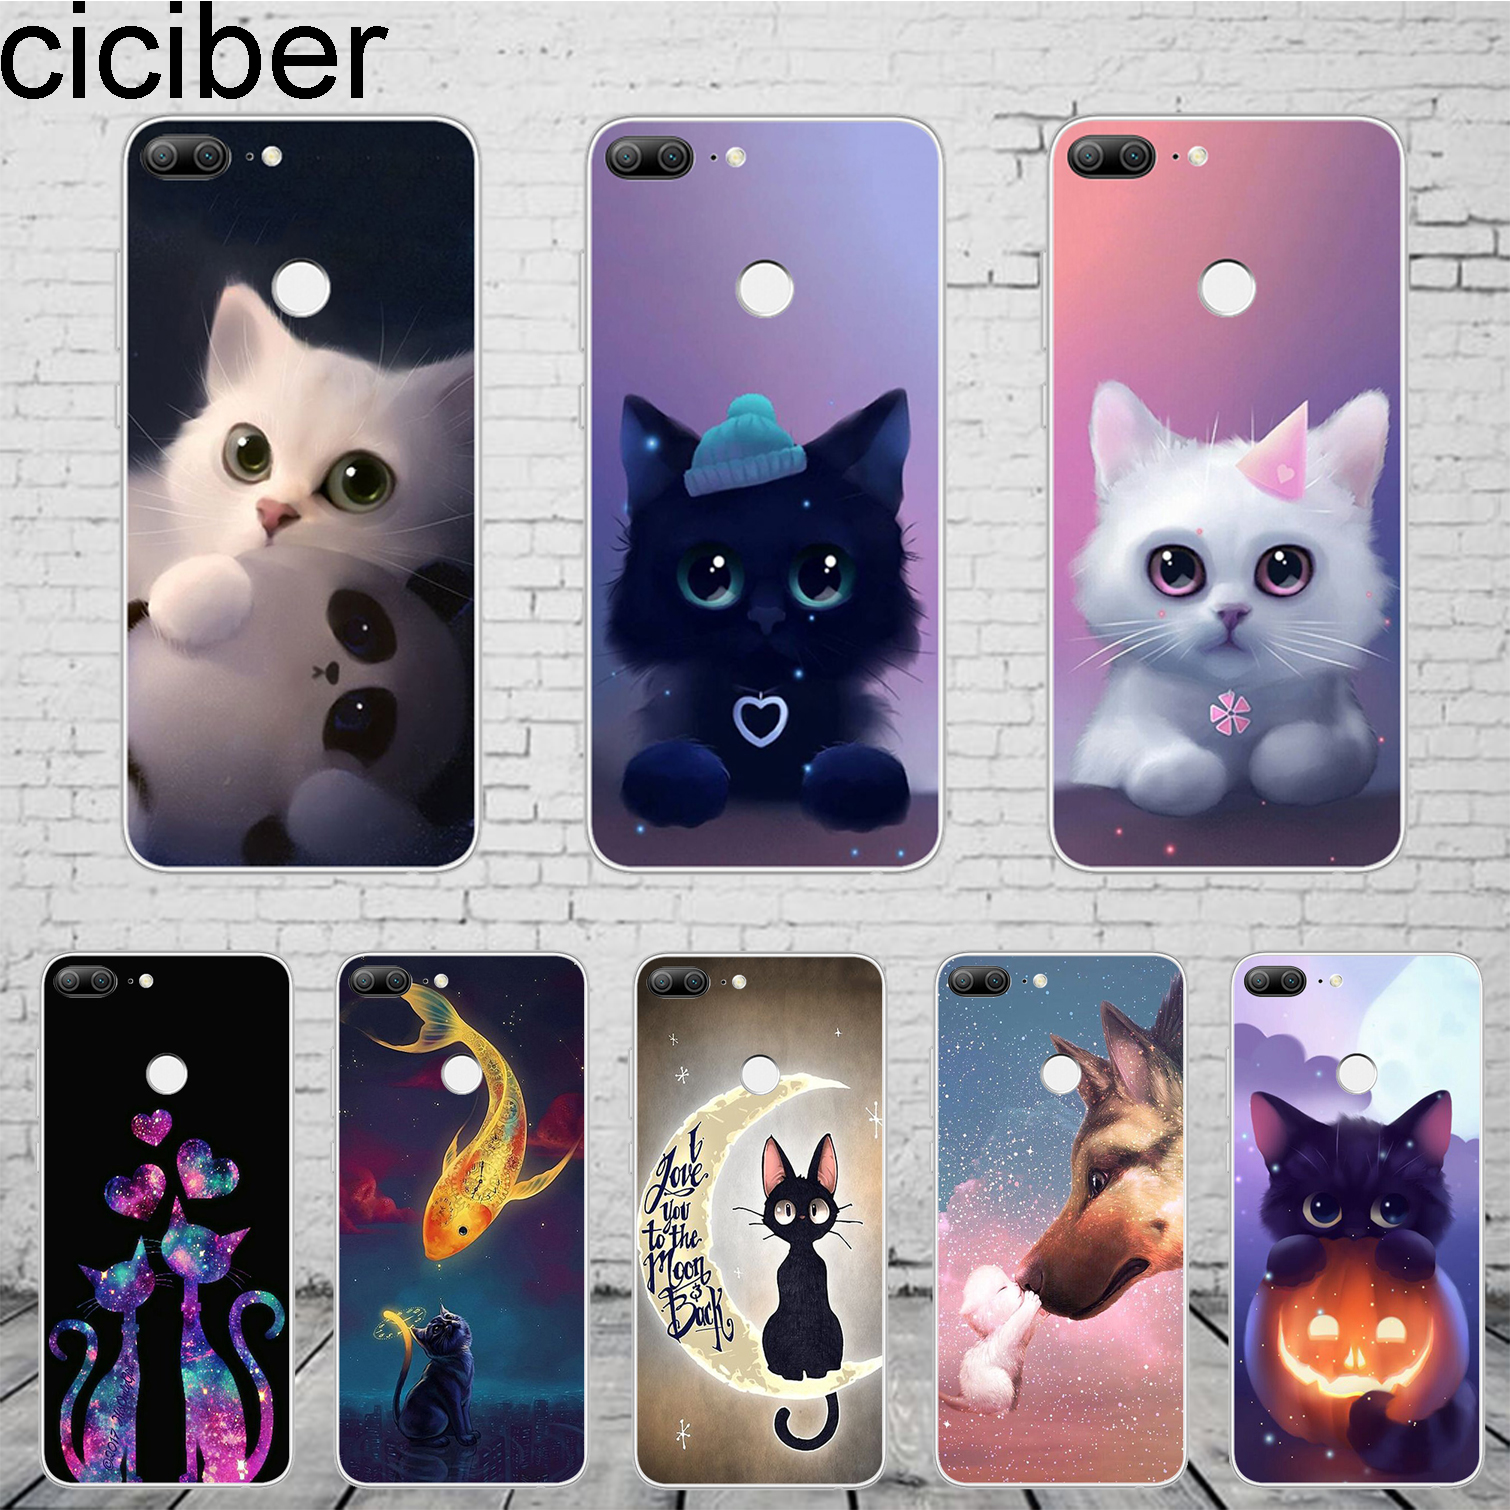 ciciber Cute Animal Cat <font><b>Fundas</b></font> For <font><b>Huawei</b></font> Honor 10 9 8 Pro Lite X Play Phone Case For <font><b>Y</b></font> 9 7 6 <font><b>5</b></font> Prime Pro 2017 <font><b>2018</b></font> 2019 TPU image